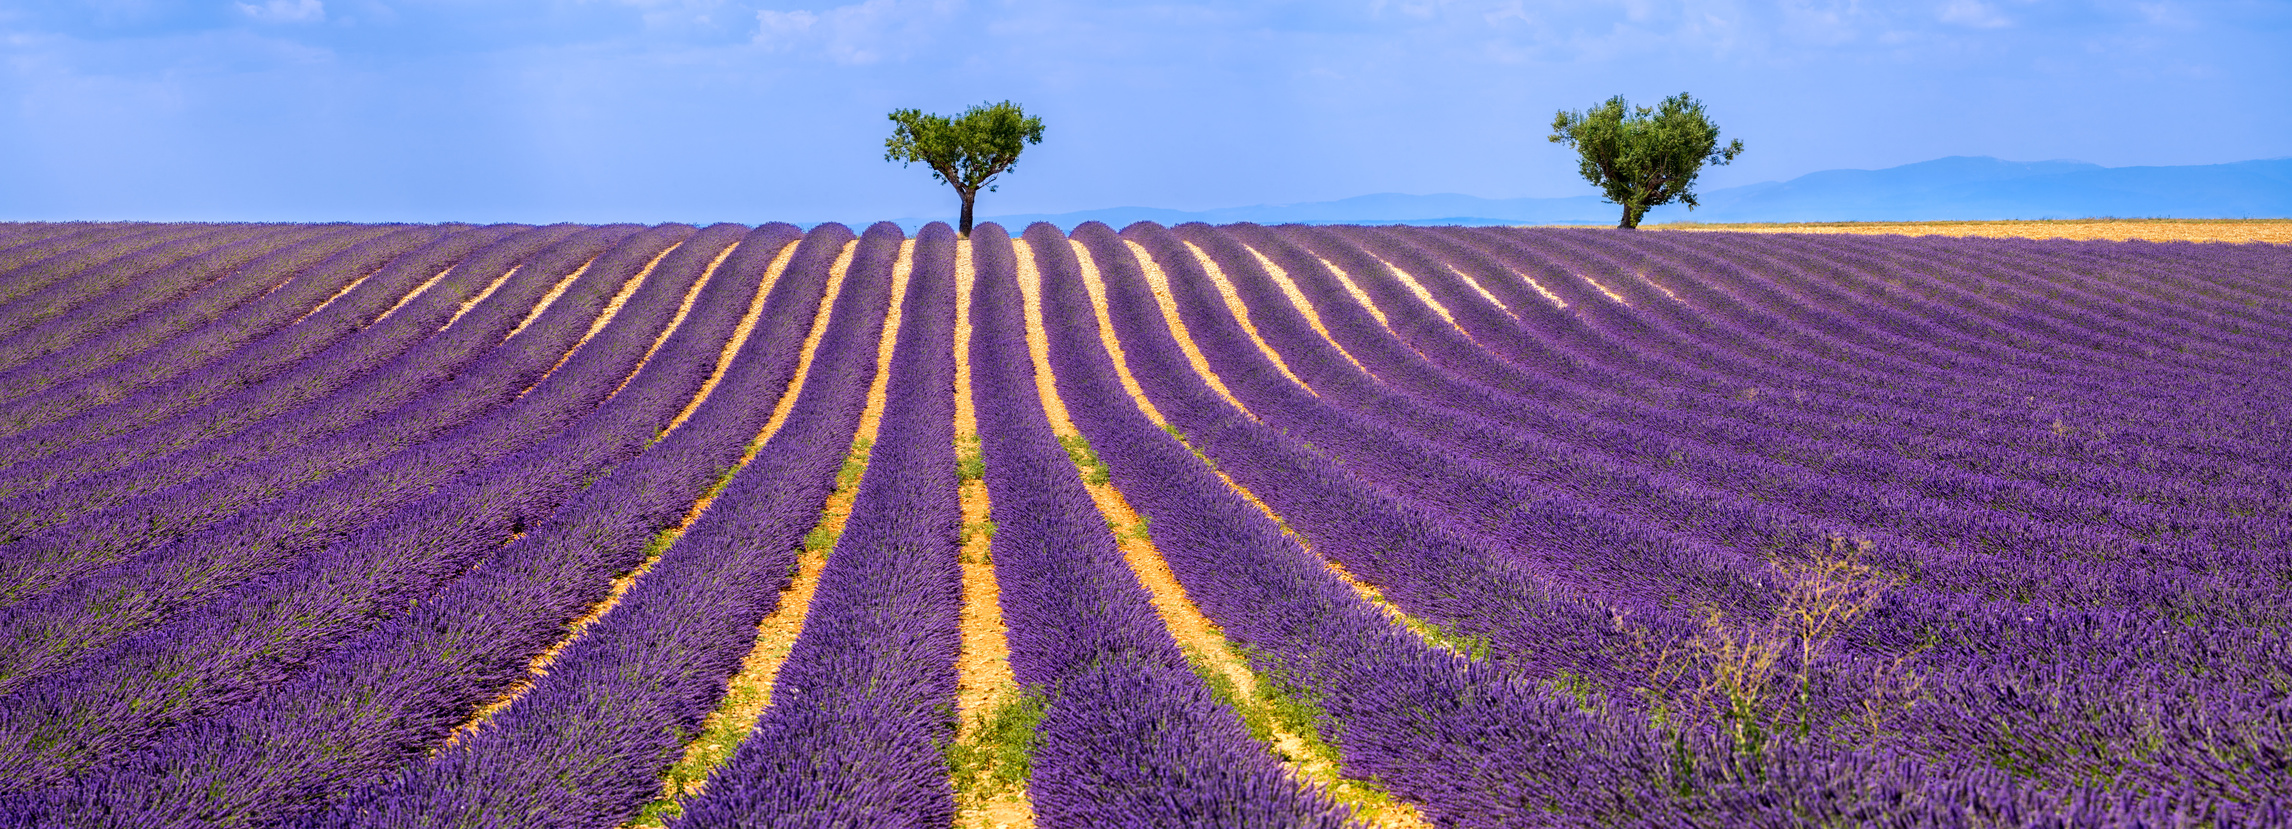 Famous French Lavender Fields